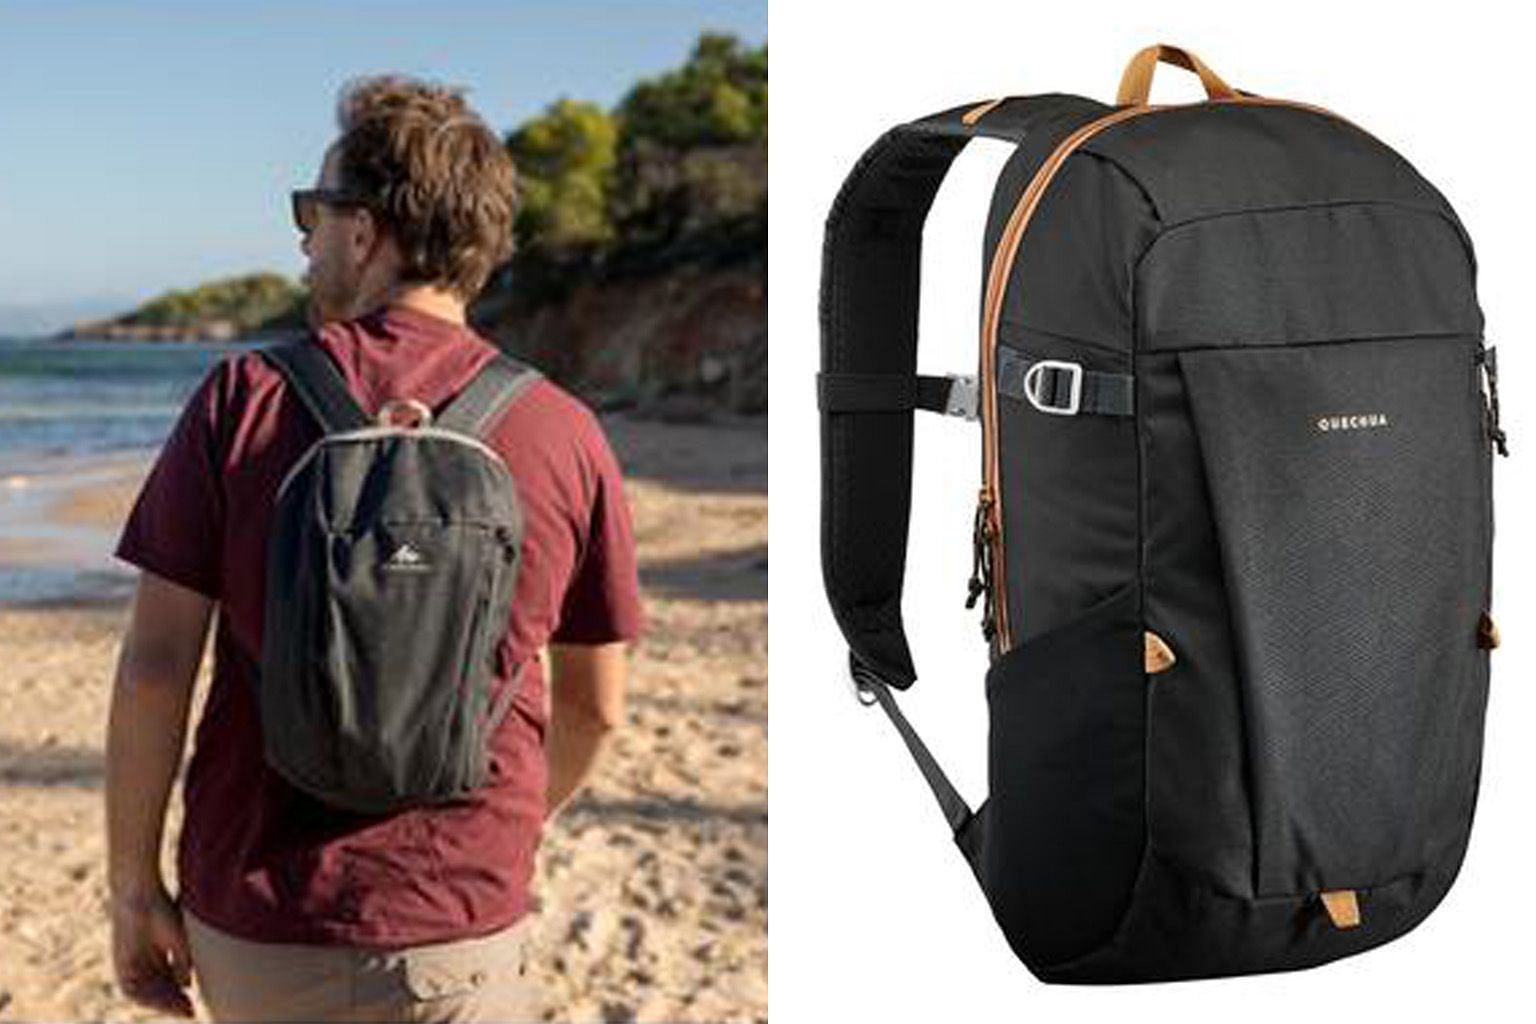 Decathlon's house brand Quechua sells a 10-litre hiking backpack (far left) which retails for just $4. The brand also makes a 20-litre version (left) that retails for $10.